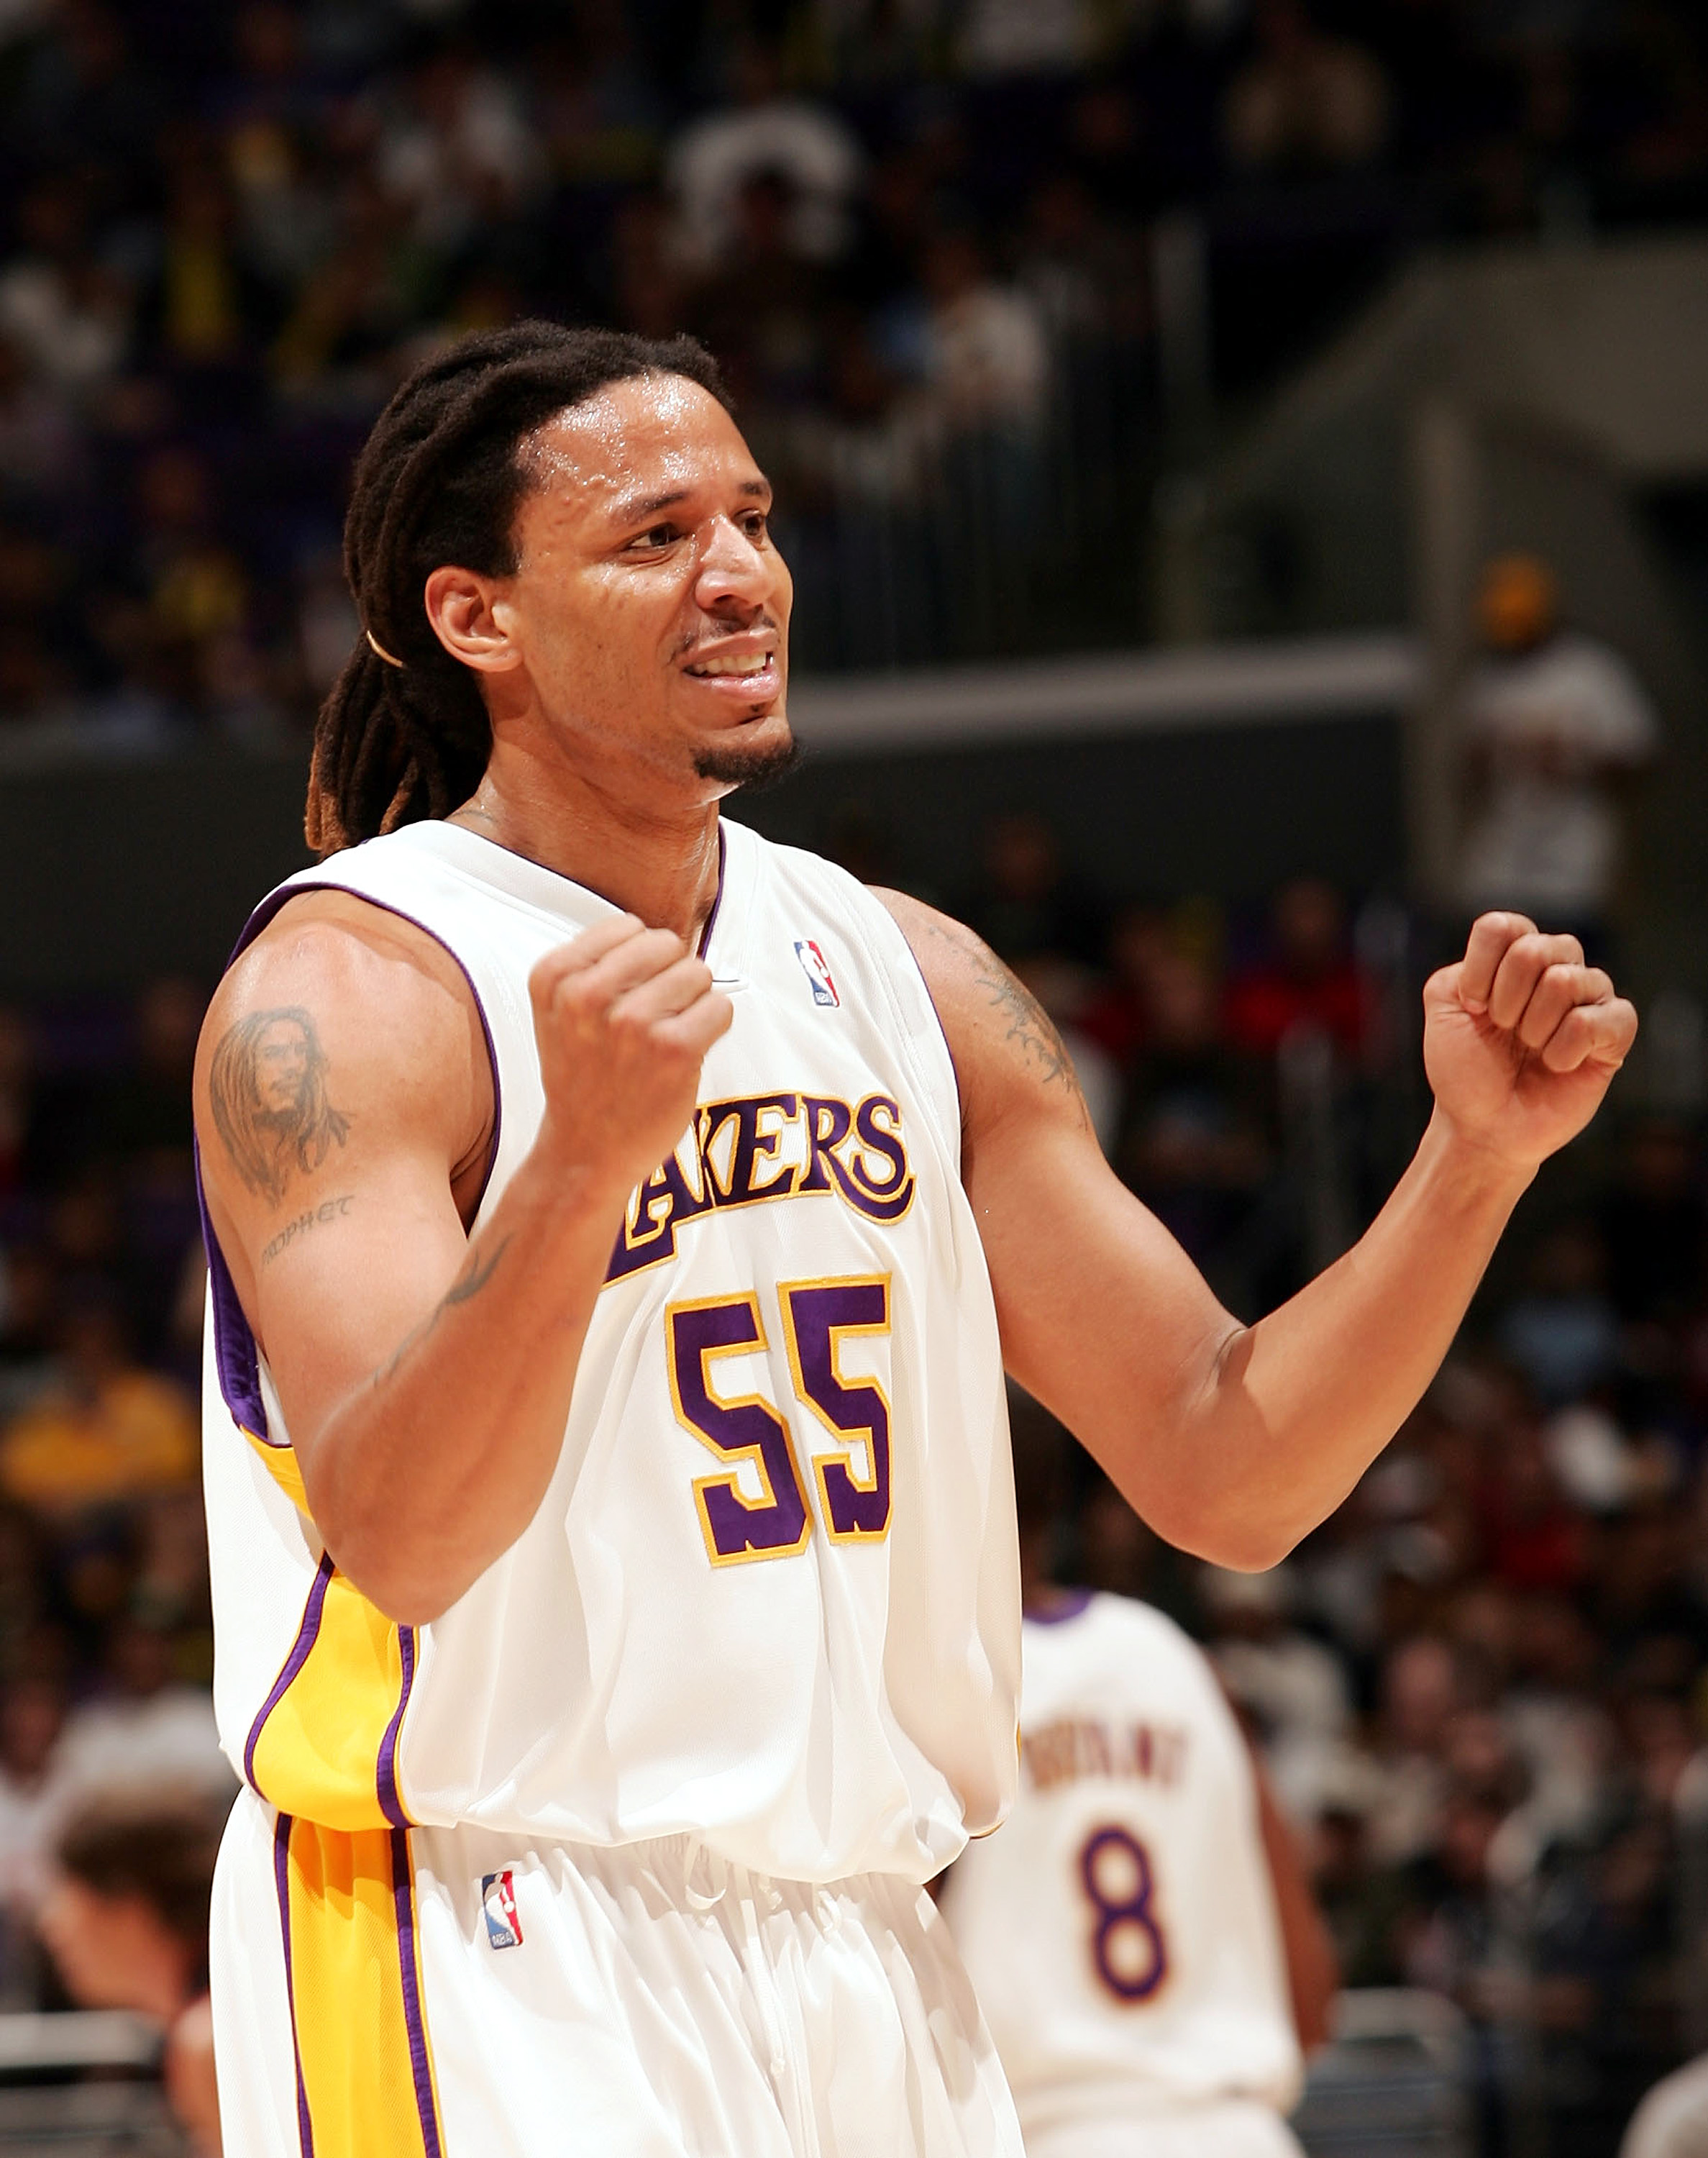 LOS ANGELES - MARCH 27:  Brian Grant #55 of the Los Angeles reacts to a call during the game against the Philadelphia 76ers at the Staples Center on March 27, 2005 in Los Angeles, California. The Sixers defeated the Lakers 96-89.  NOTE TO USER: User expre